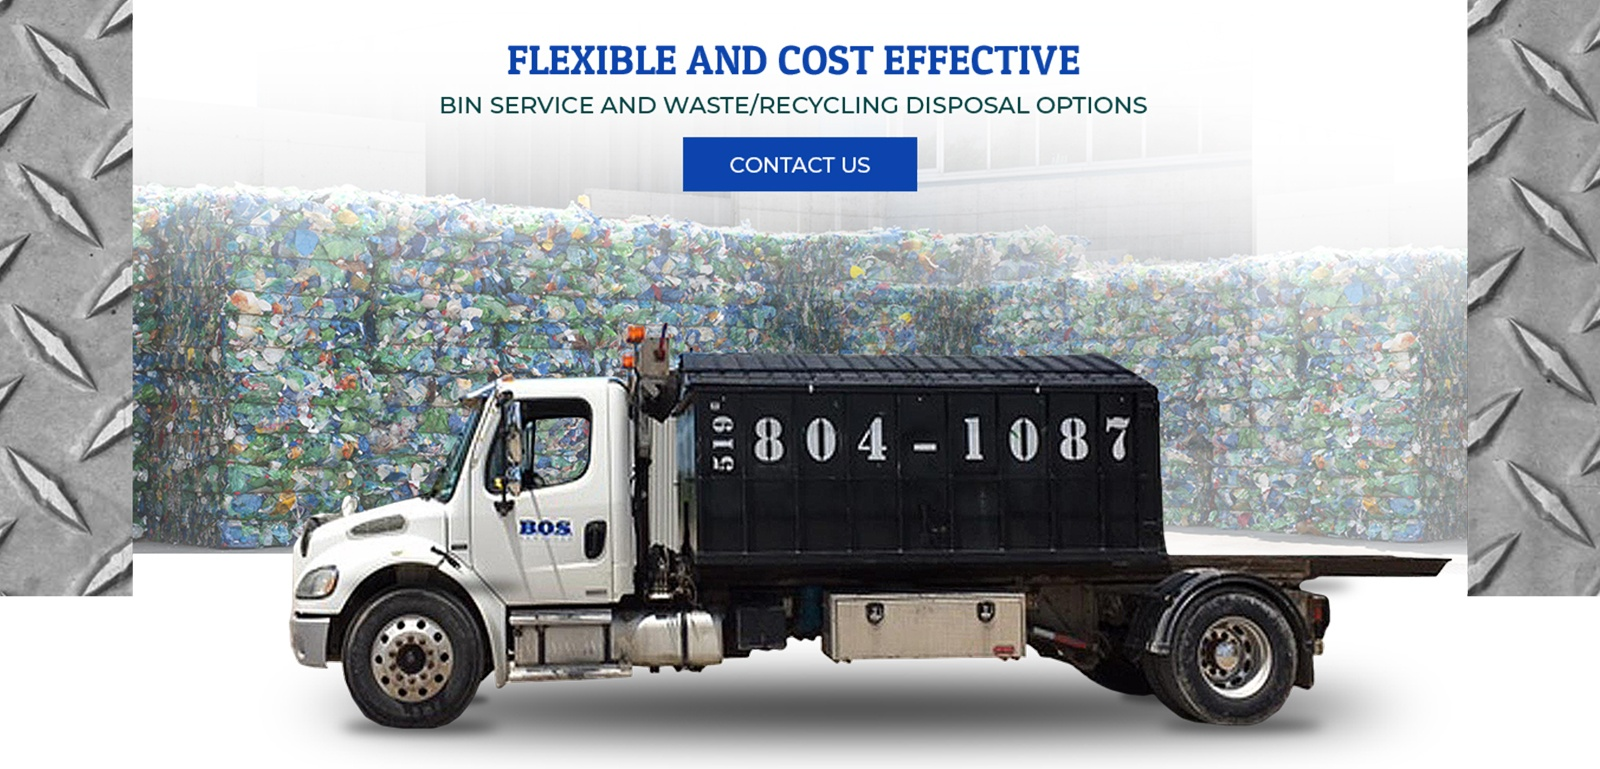 Flexible and Cost Effective - Bin Service and Waste, Recycling Disposal Options by BOS Services Inc.